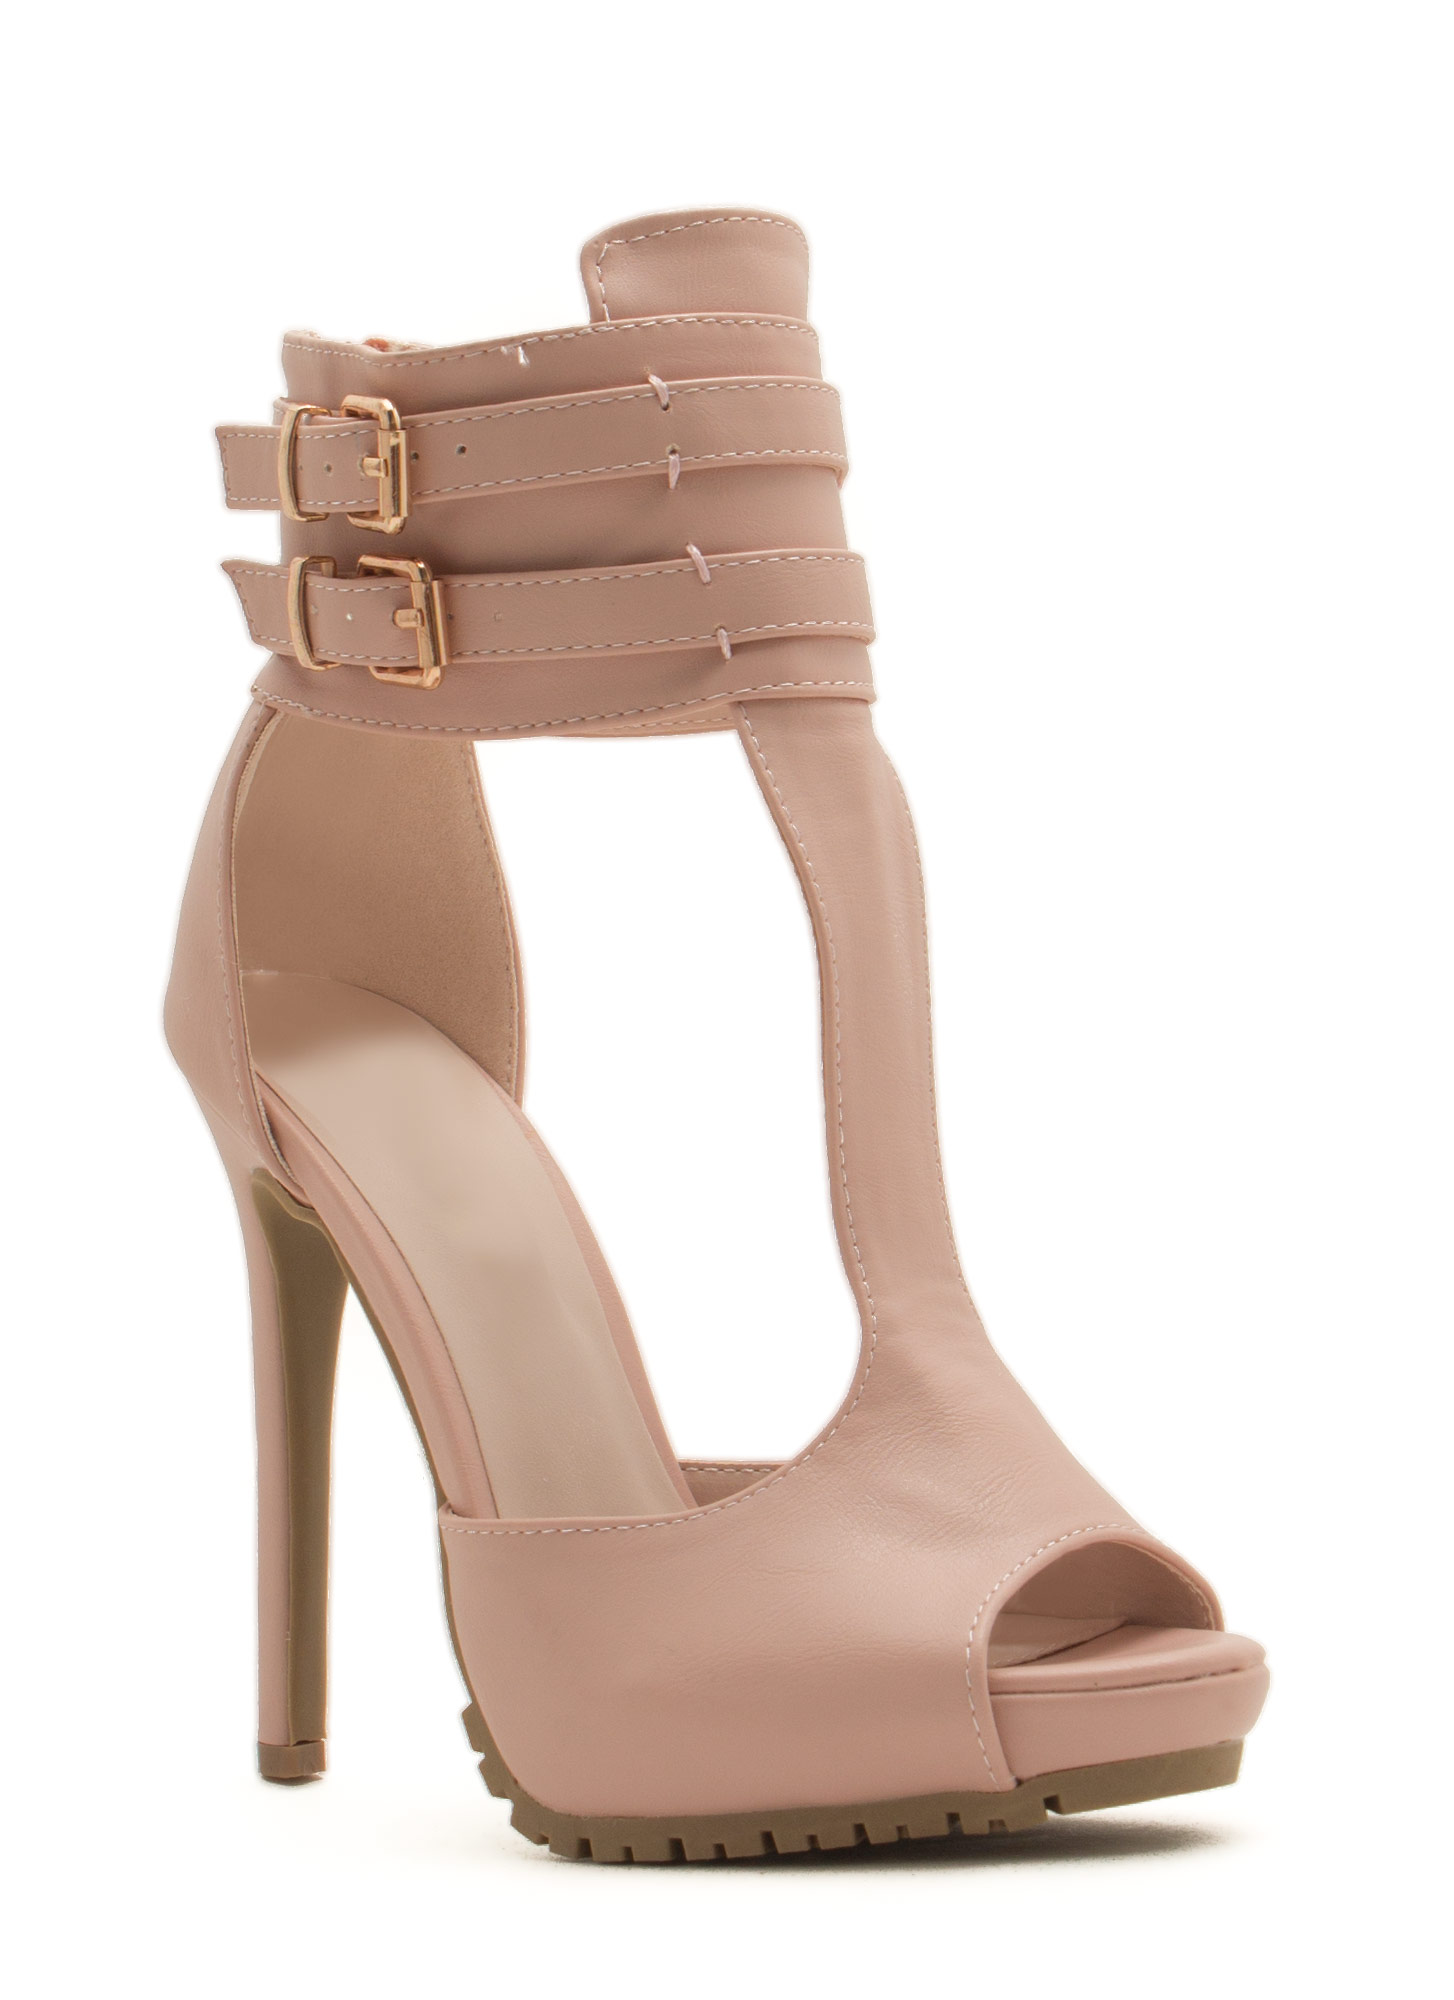 Good Luck Double Buckle T-Strap Heels NUDE